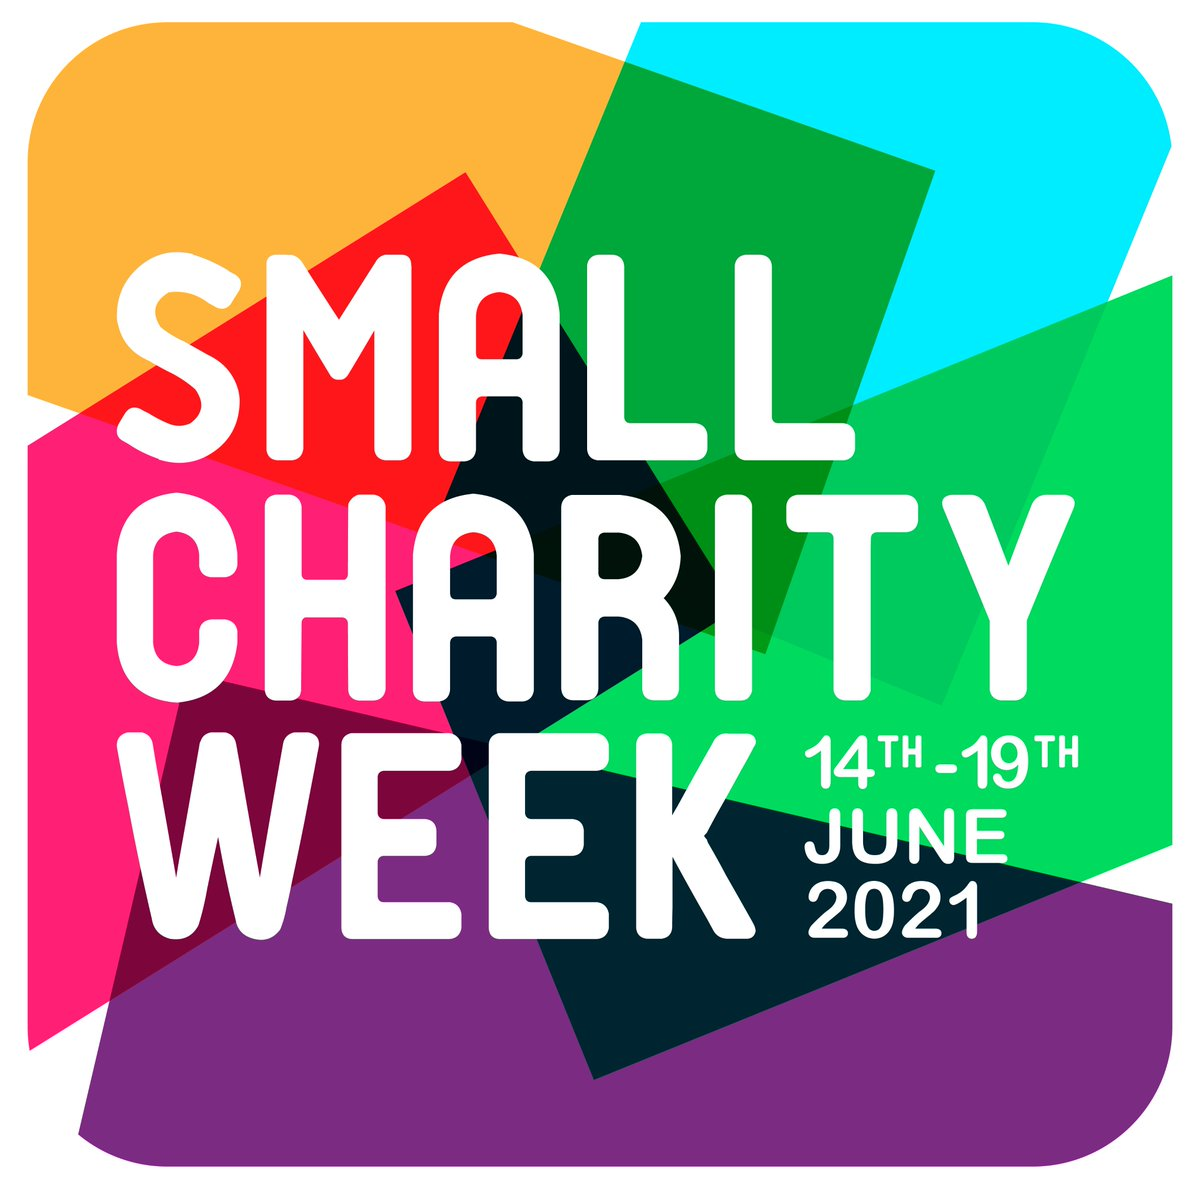 test Twitter Media - This week is #SmallCharityWeek (our favourite kind of charity) and today is big impact day, which highlights the fact grass roots groups can make an enormous impact on their communities. We know this because we see the incredible difference they make here in #Dorset every day. https://t.co/McWGVjXSPb